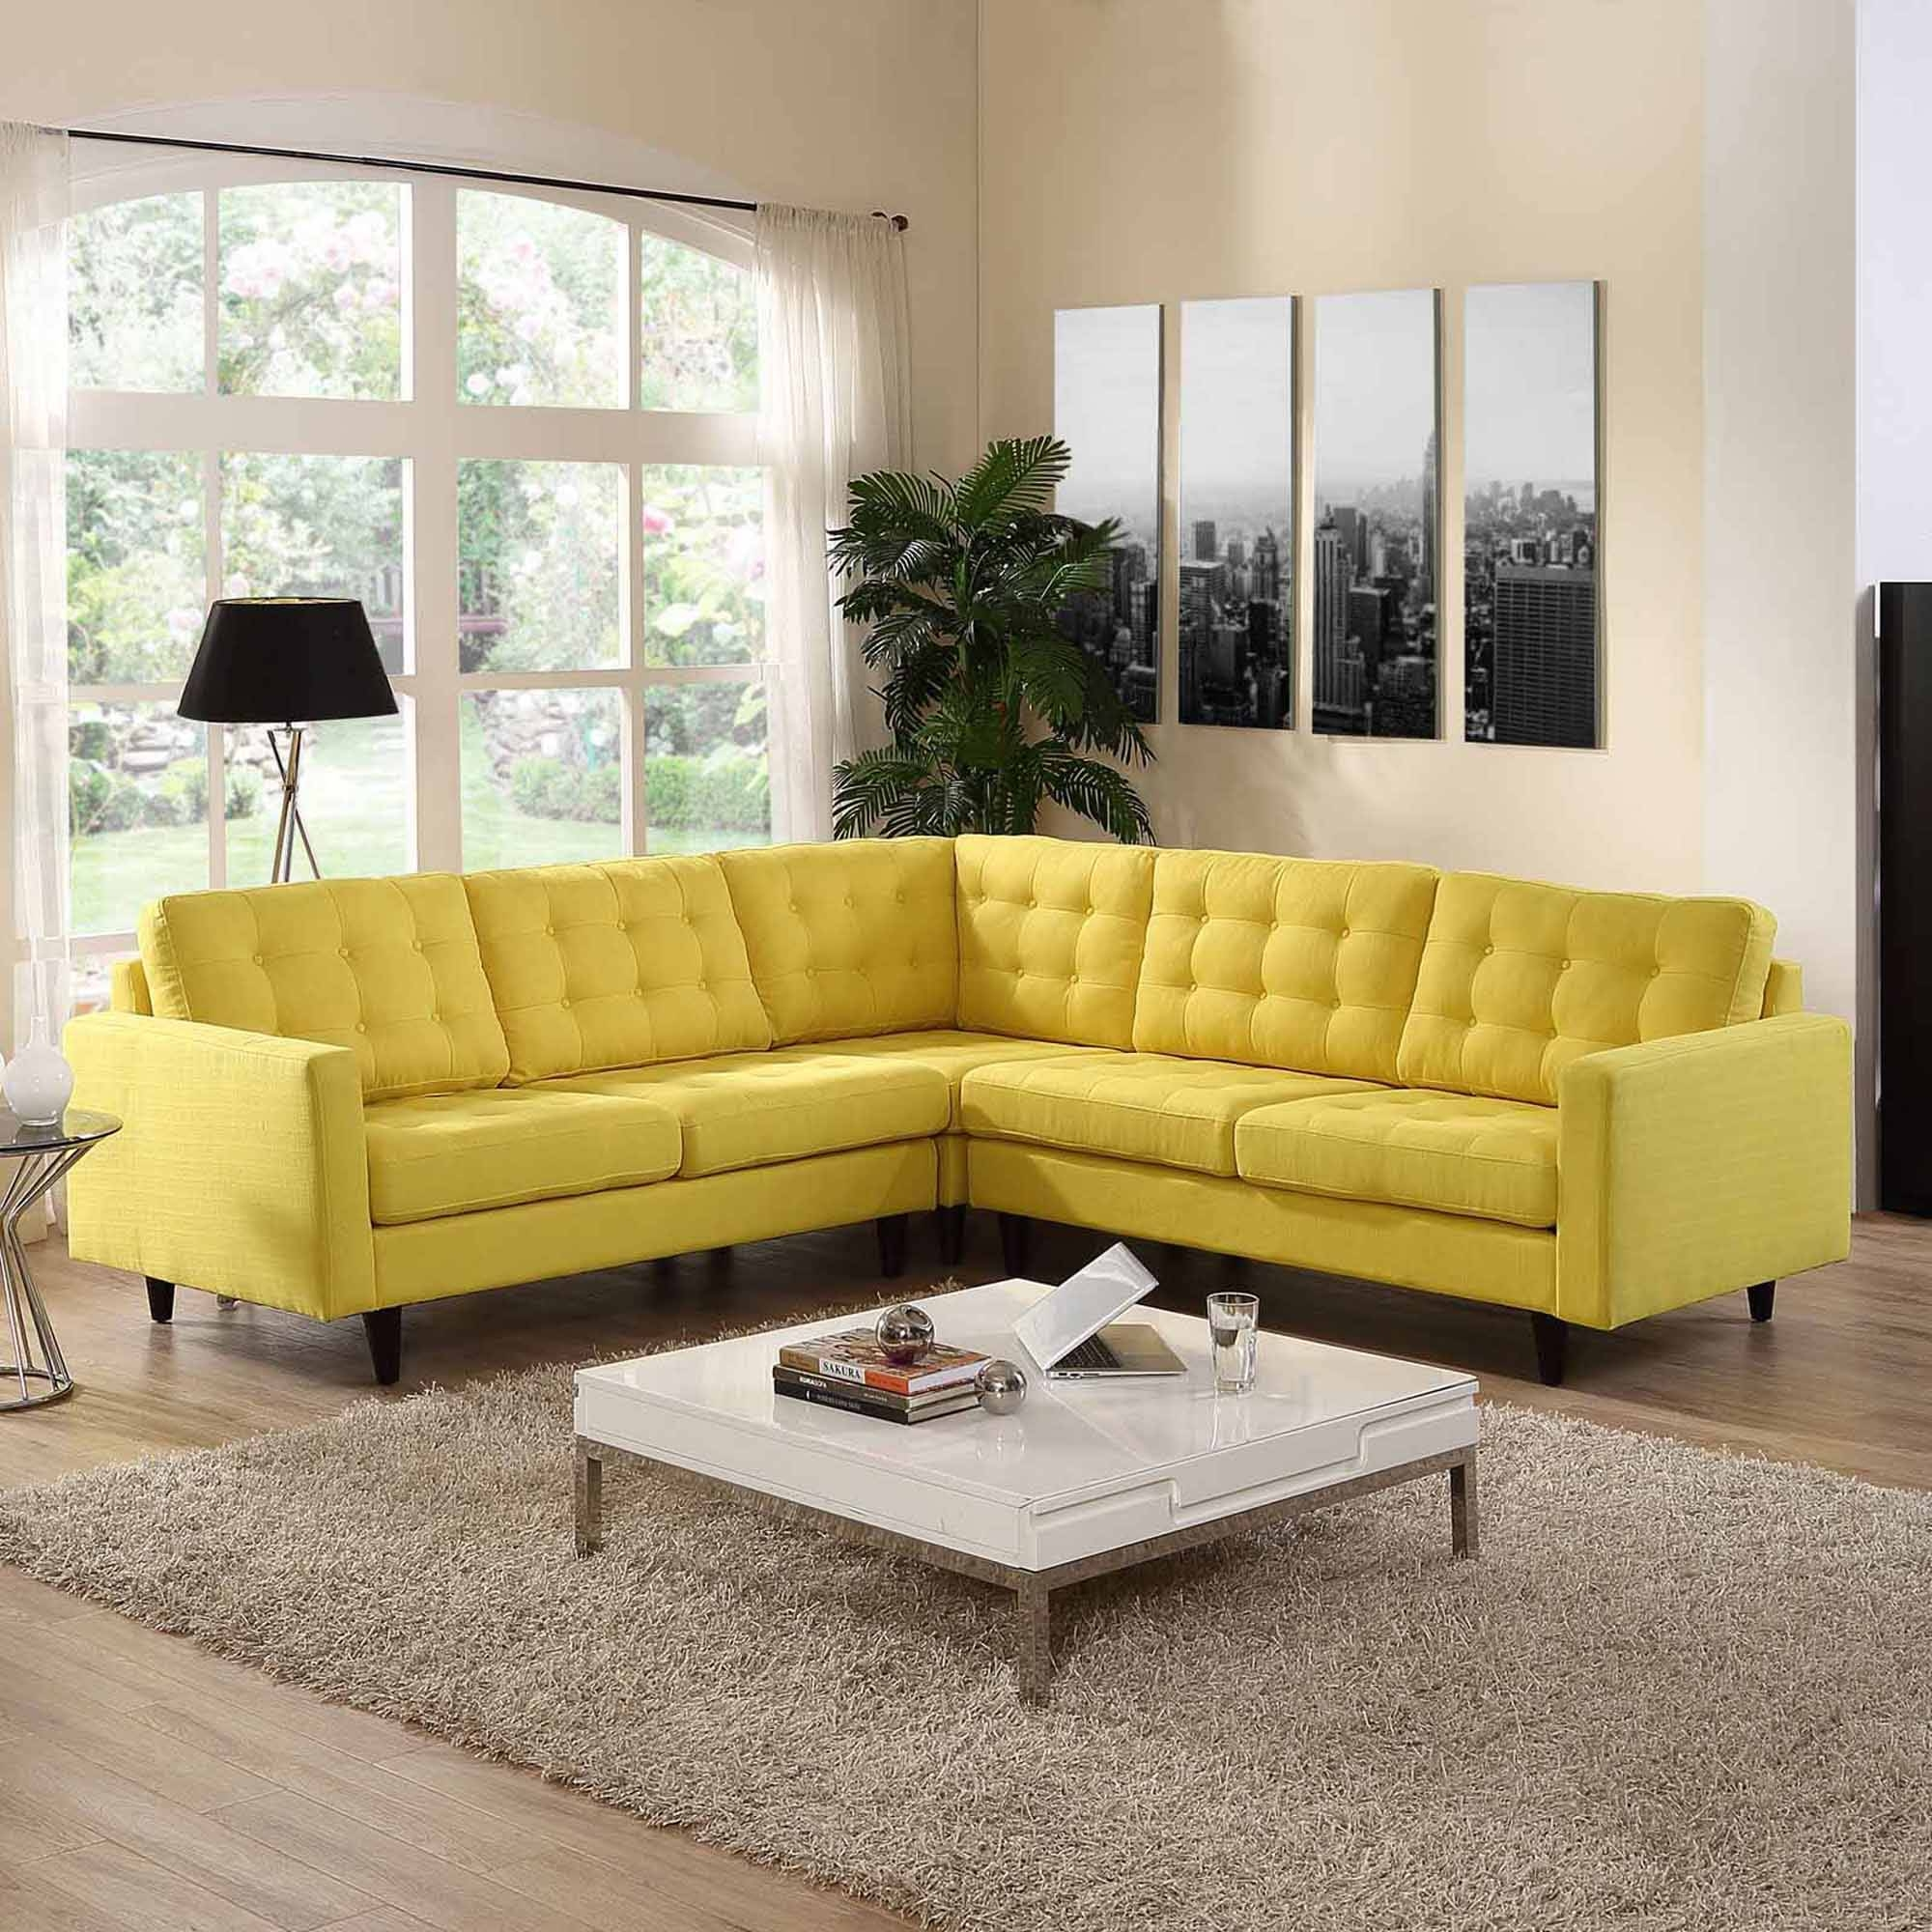 Awesome Colorful Sectional Sofas 98 On Leather Motion Sectional regarding Motion Sectional Sofas (Image 1 of 30)